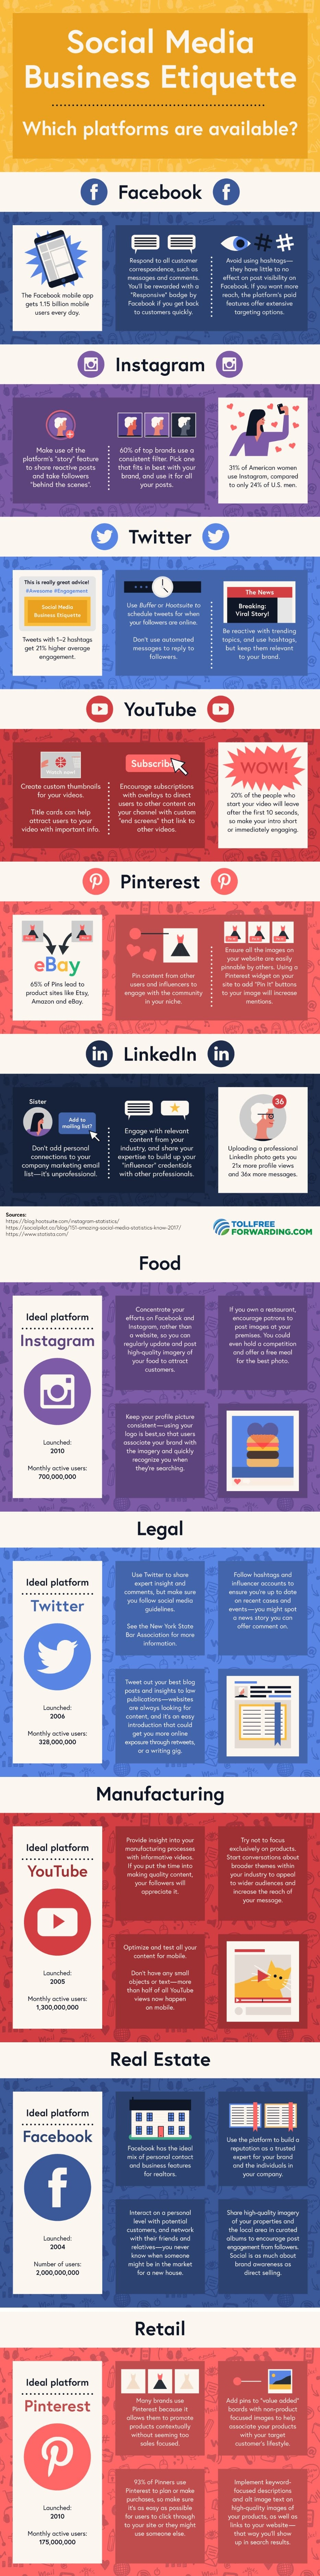 Social Media Business Etiquette - #infographic